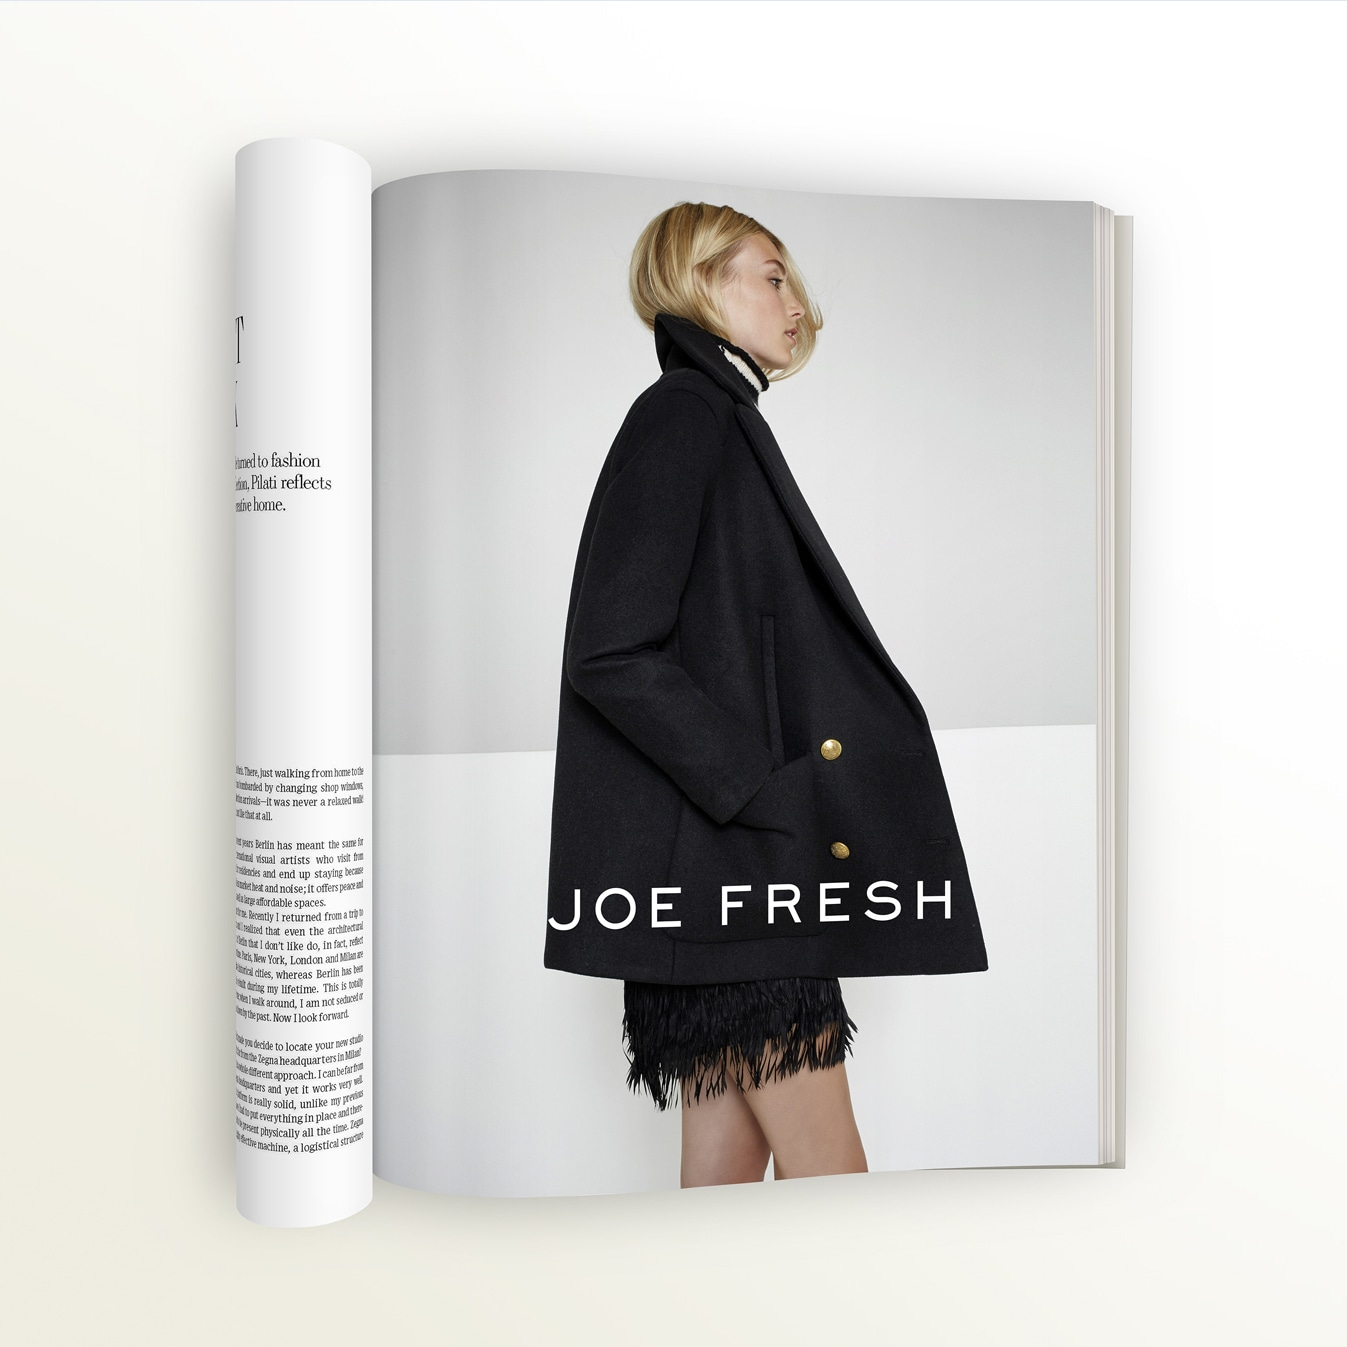 Joe Fresh - creative direction, advertising, campaign development, packaging